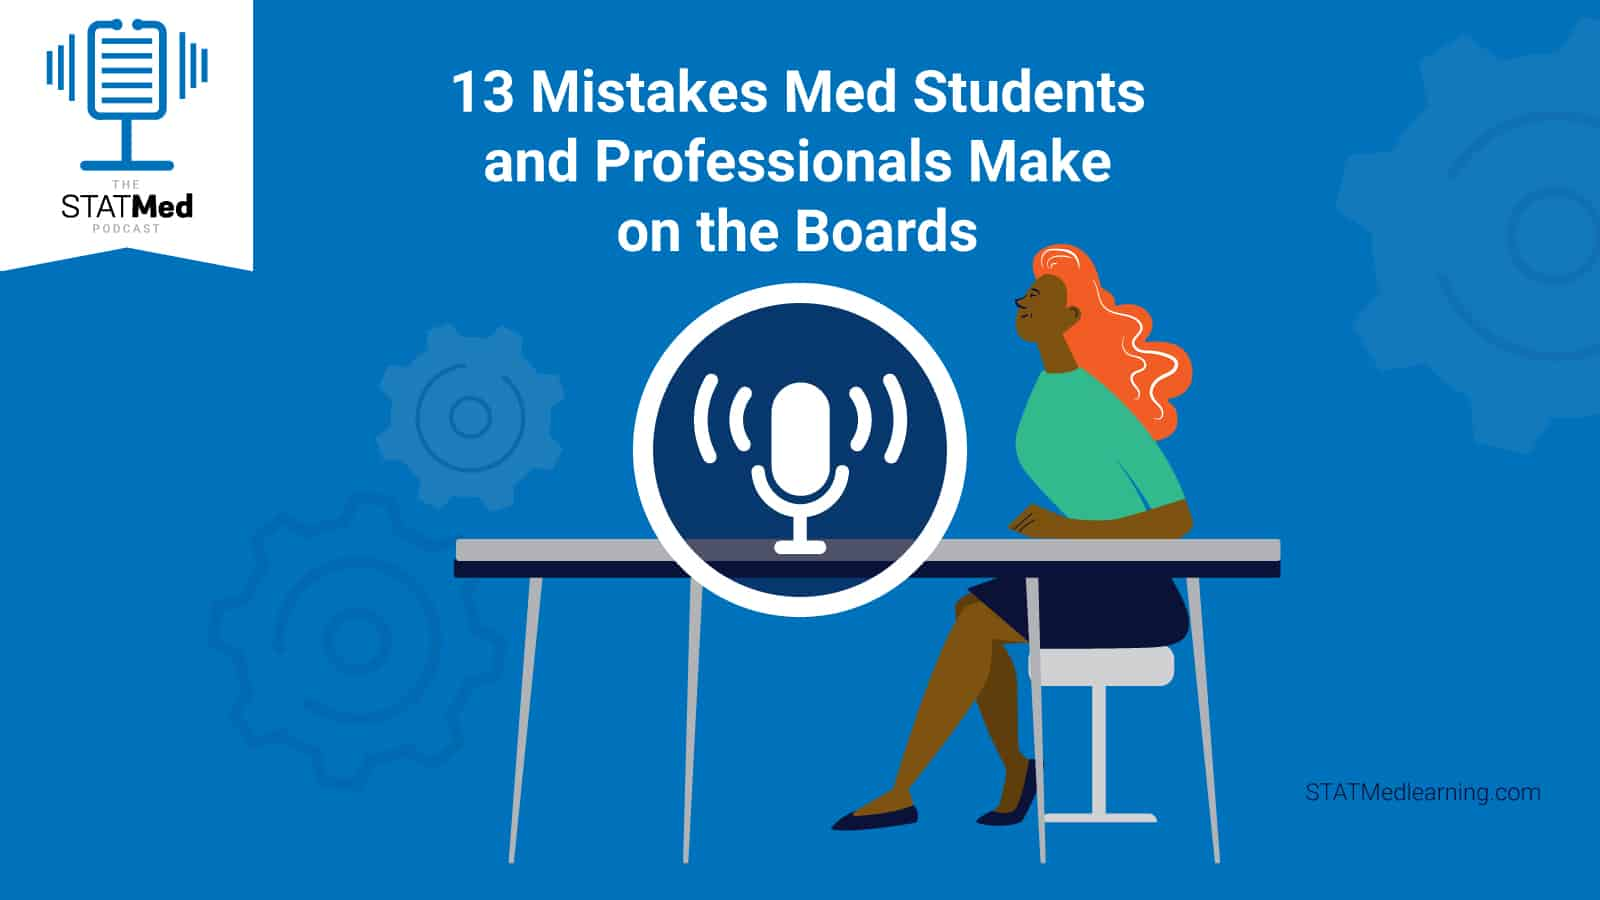 Test-taking errors medical students and doctors make on board exams.